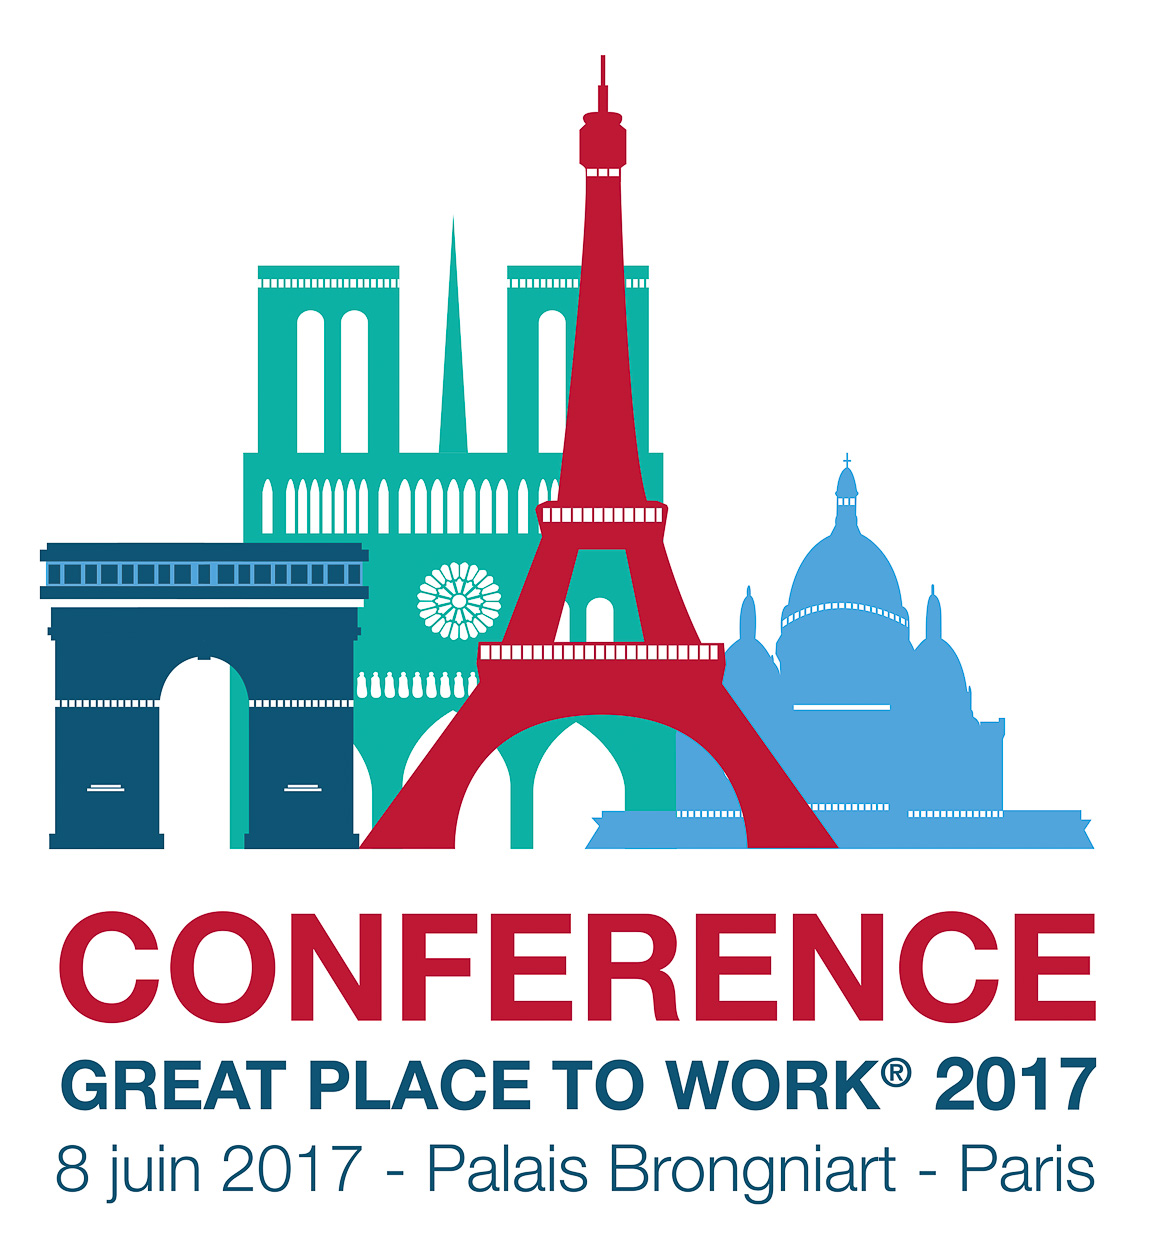 logo conference europe 2017